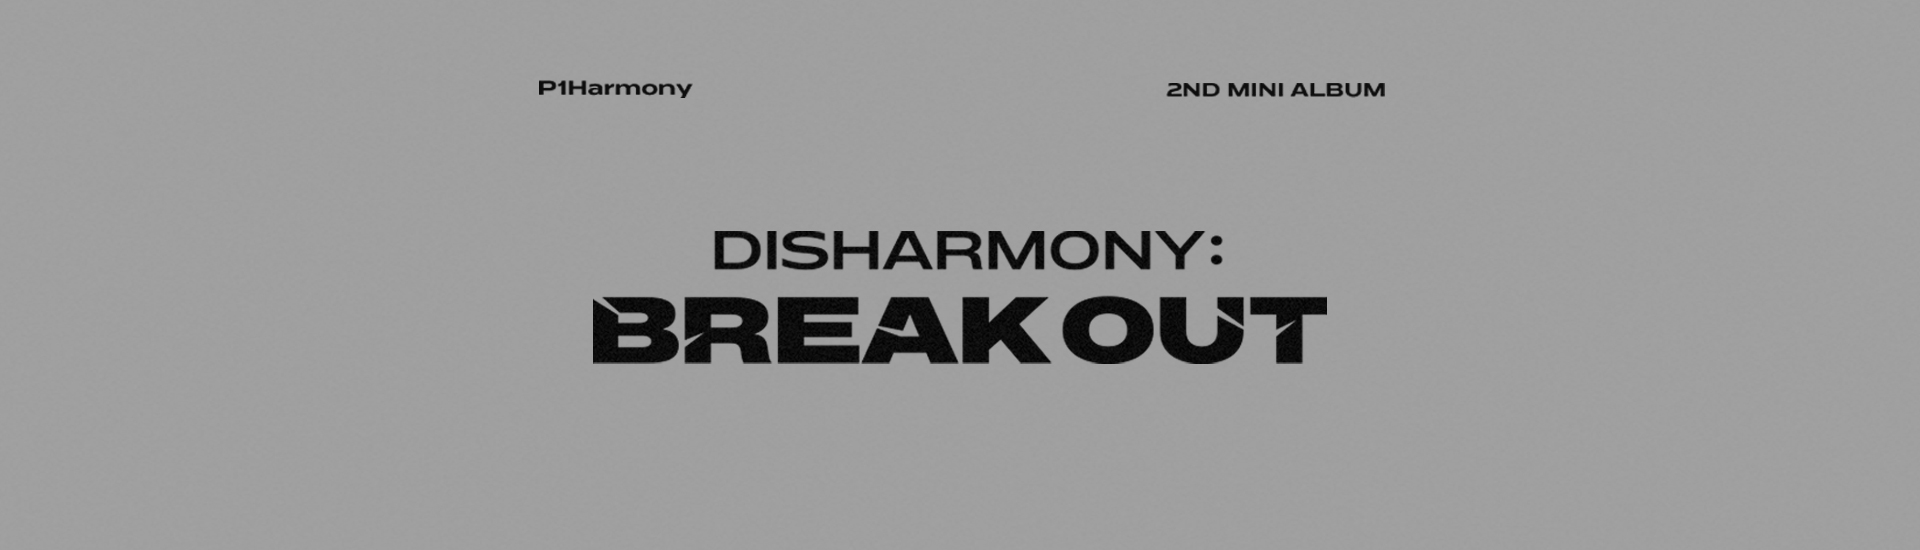 P1Harmony - 2nd MINI ALBUM [DISHARMONY : BREAK OUT] GLOBAL VIDEO CALL EVENT